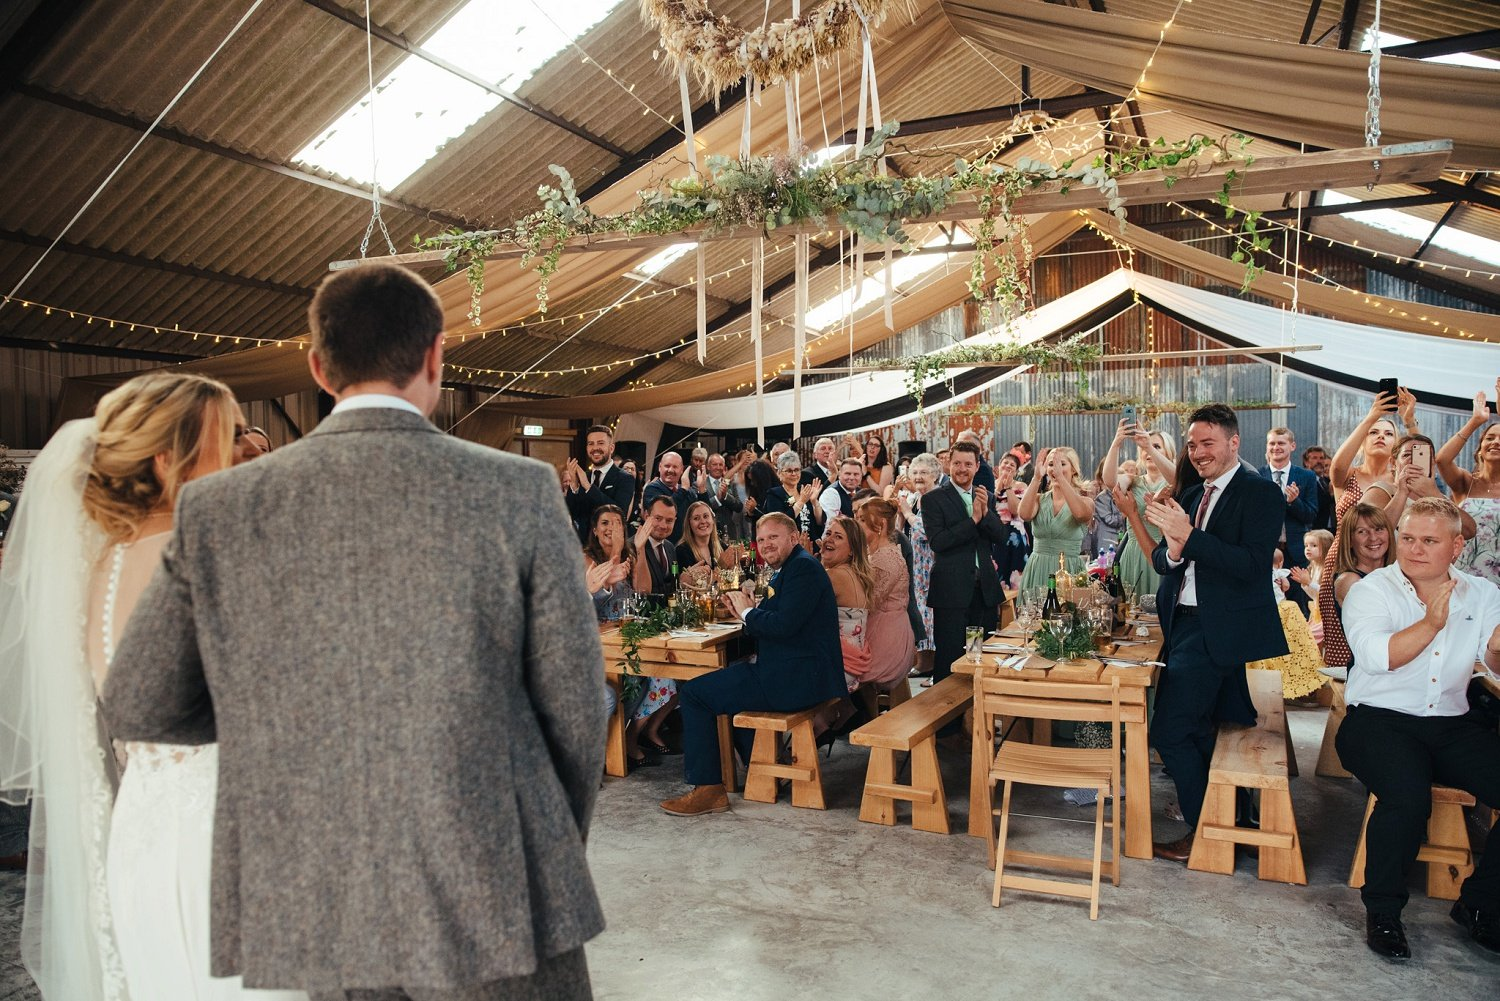 Wedding guests welcome the bride and groom inside the Barn at Redbank in Herefordshire